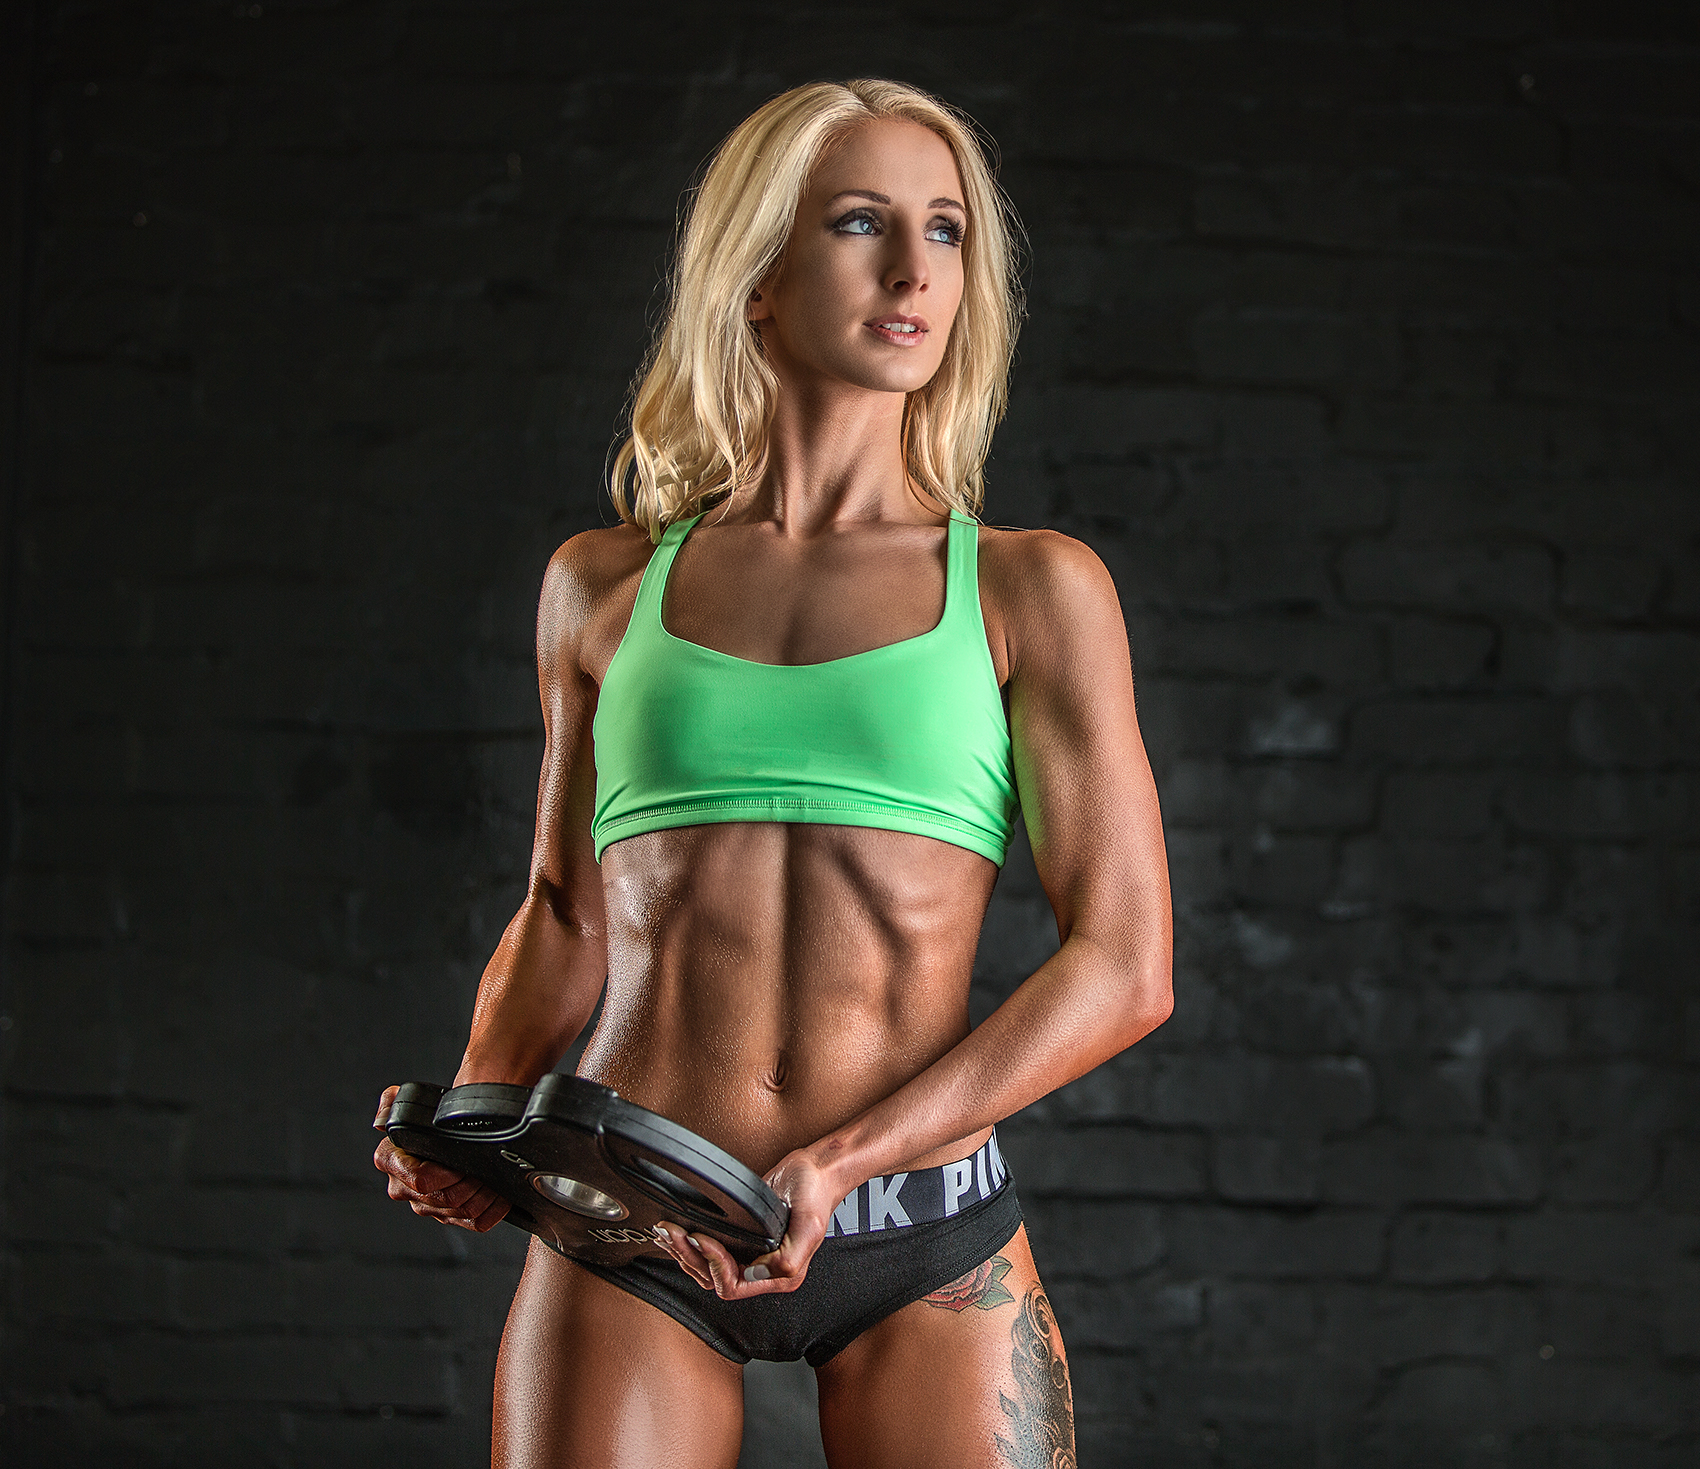 I am Tara Hall and I am a personal fitness instructor based in Norwich.